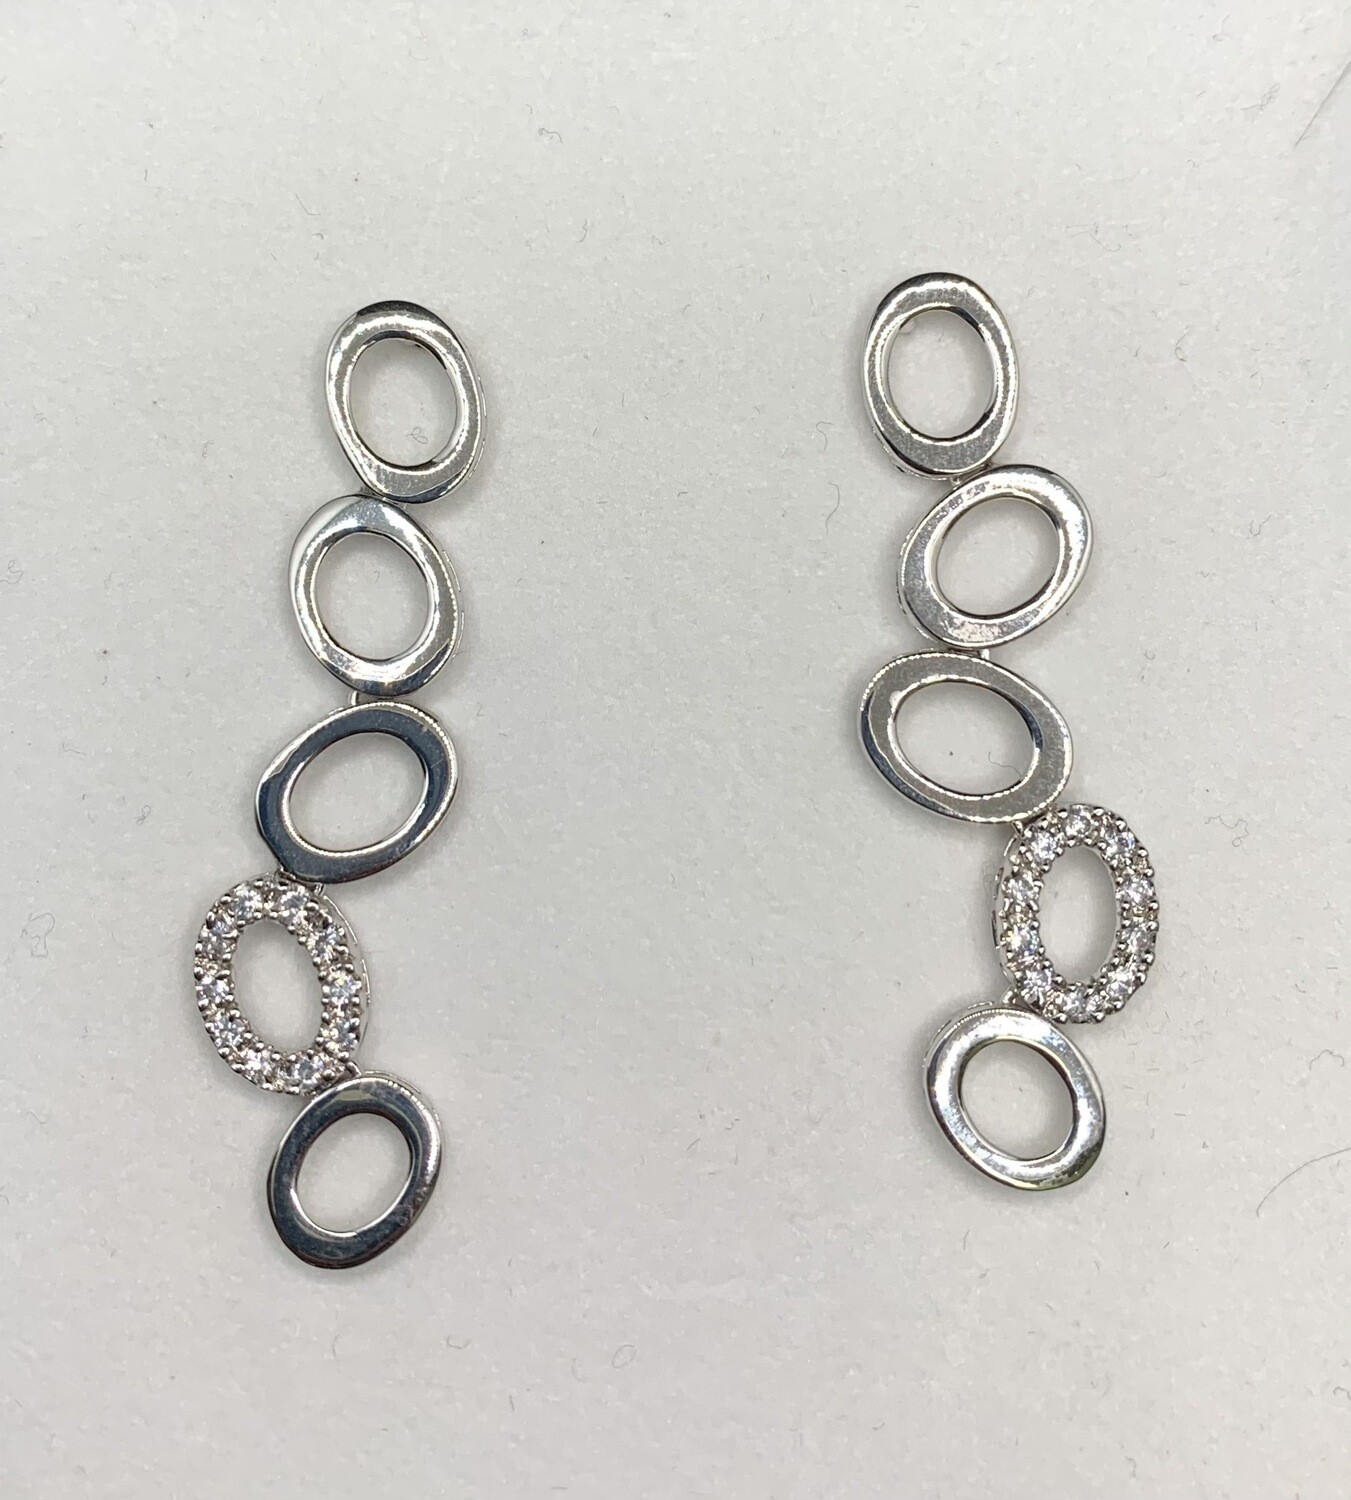 Hanging Sterling Silvers Os With CZ Accents Earrings